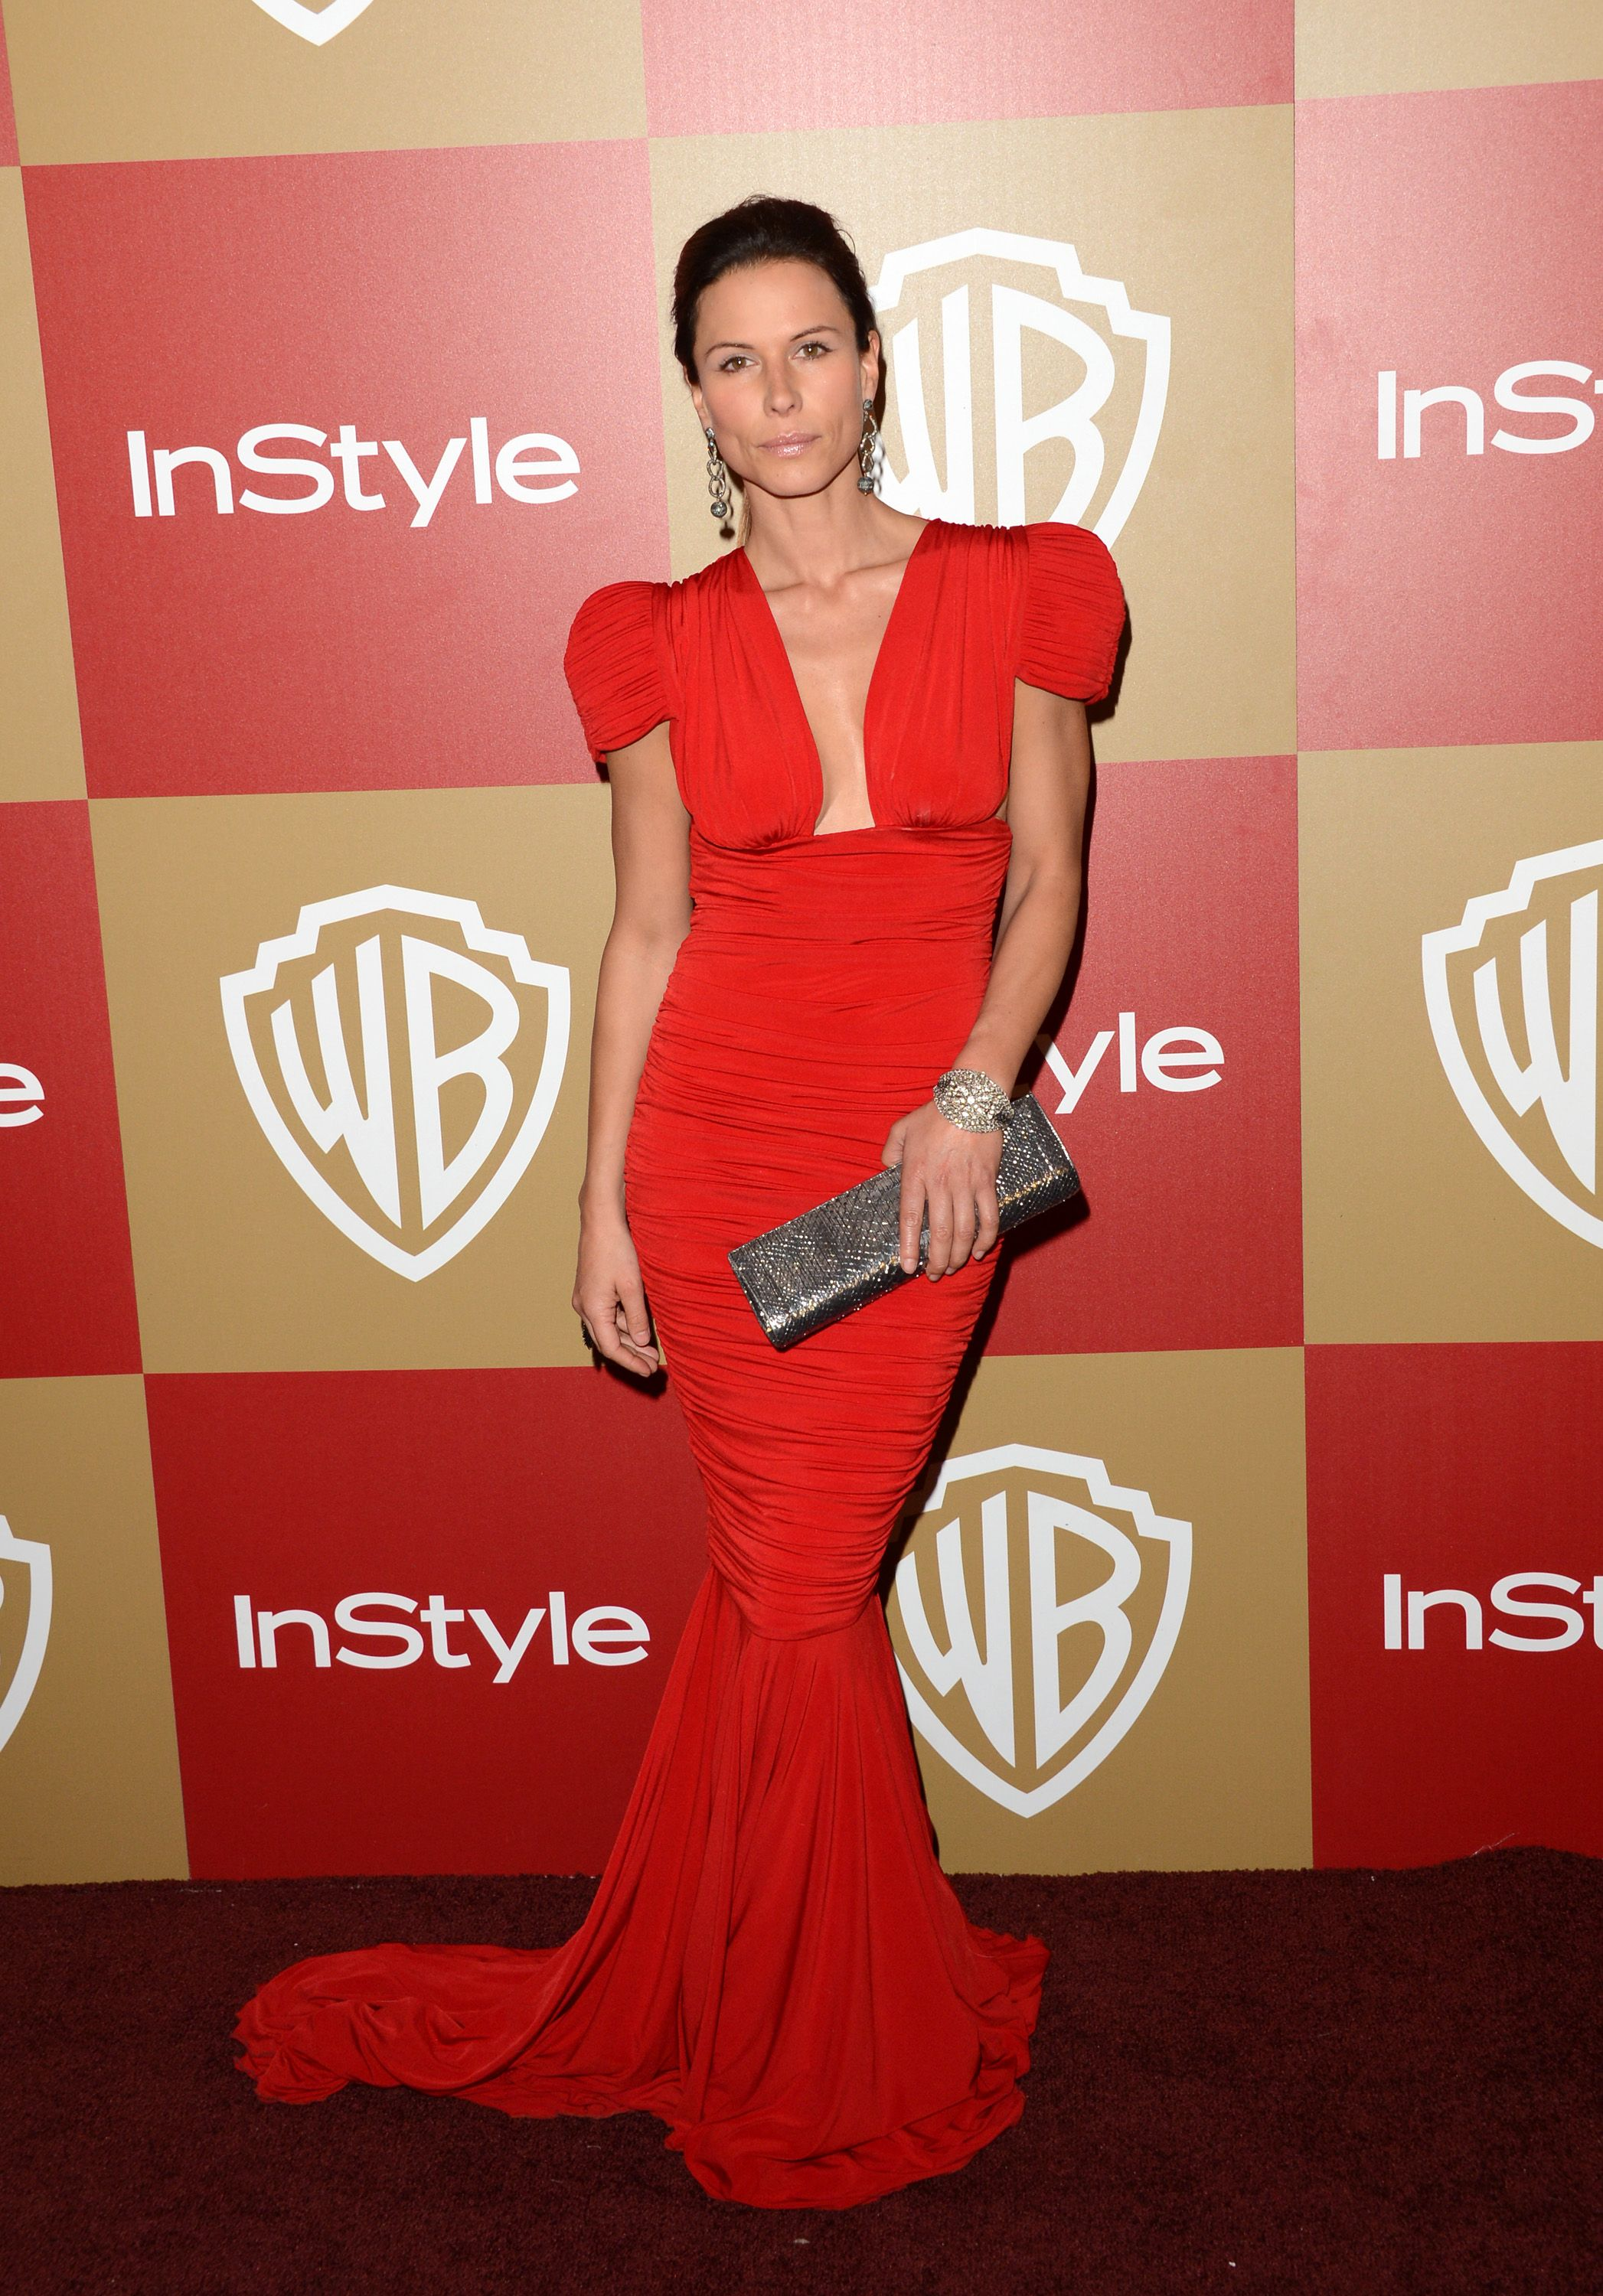 E6KHMYYXLM_Rhona_Mitra_-_14th_Annual_Warner_Bros.__InStyle_Golden_Globe_Awards_After_Party_at_the_Oasis_Courtyard_2C_Beverly_Hills_13.01.13_04